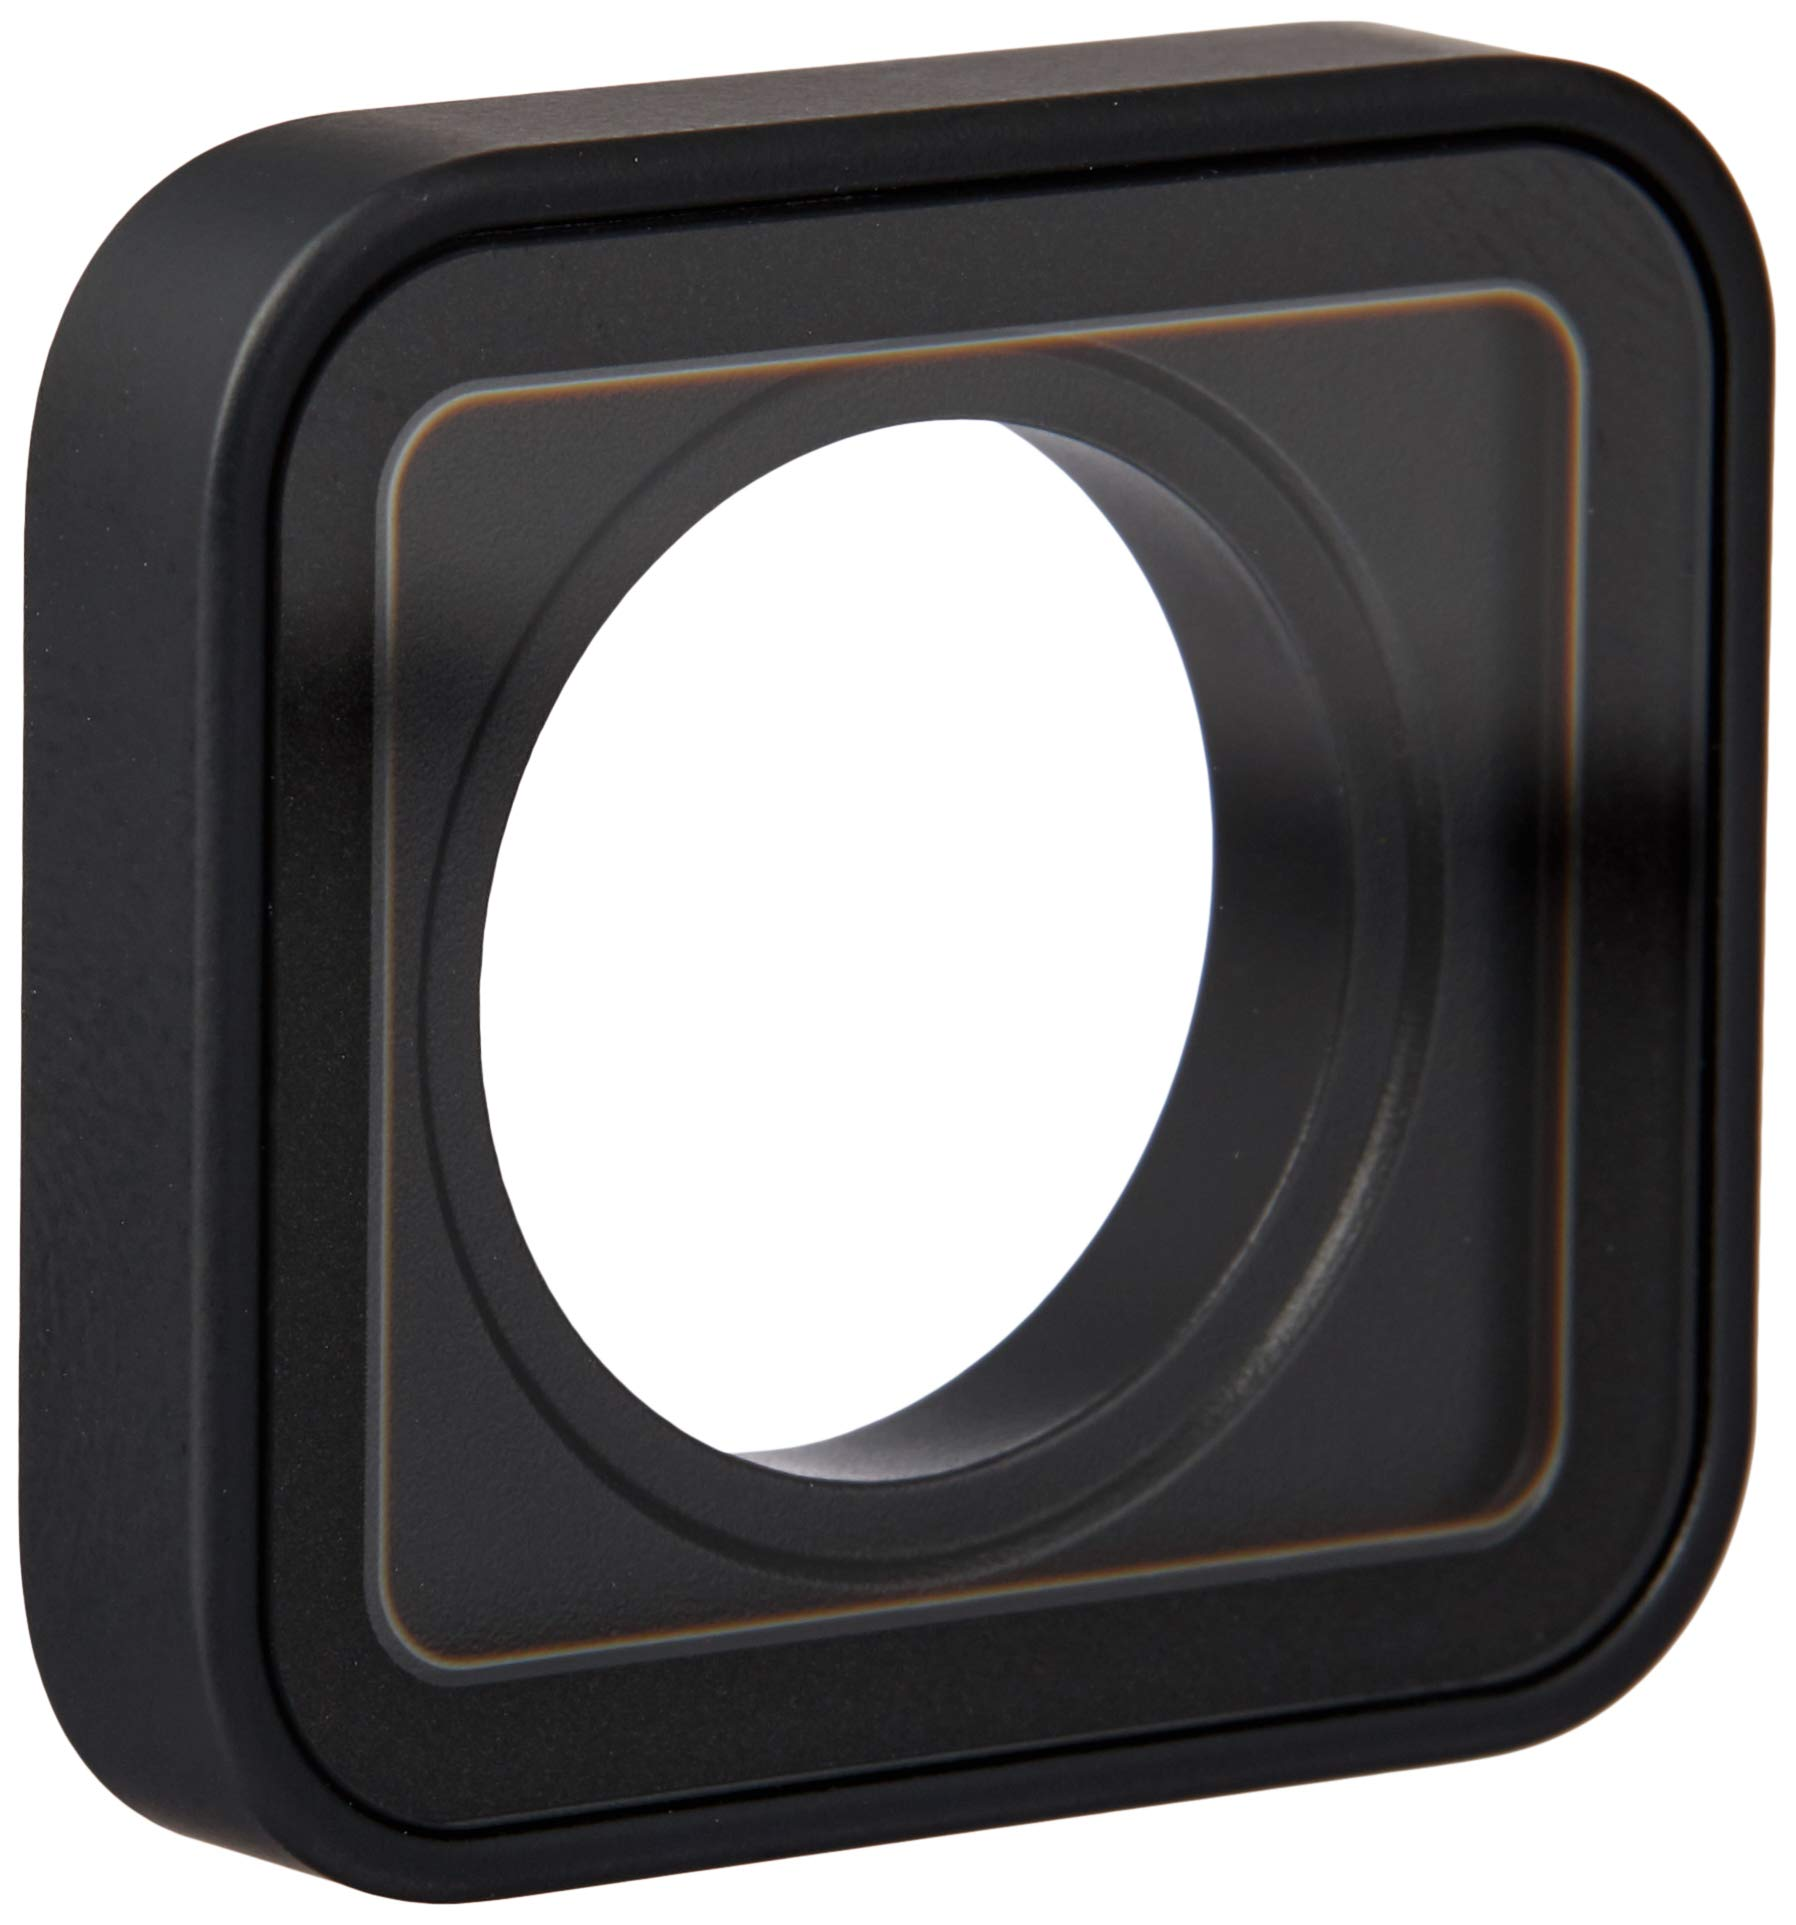 GoPro Camera Accessory Protective Lens Replacement for (HERO7 Black) - Official GoPro Accessory by GoPro